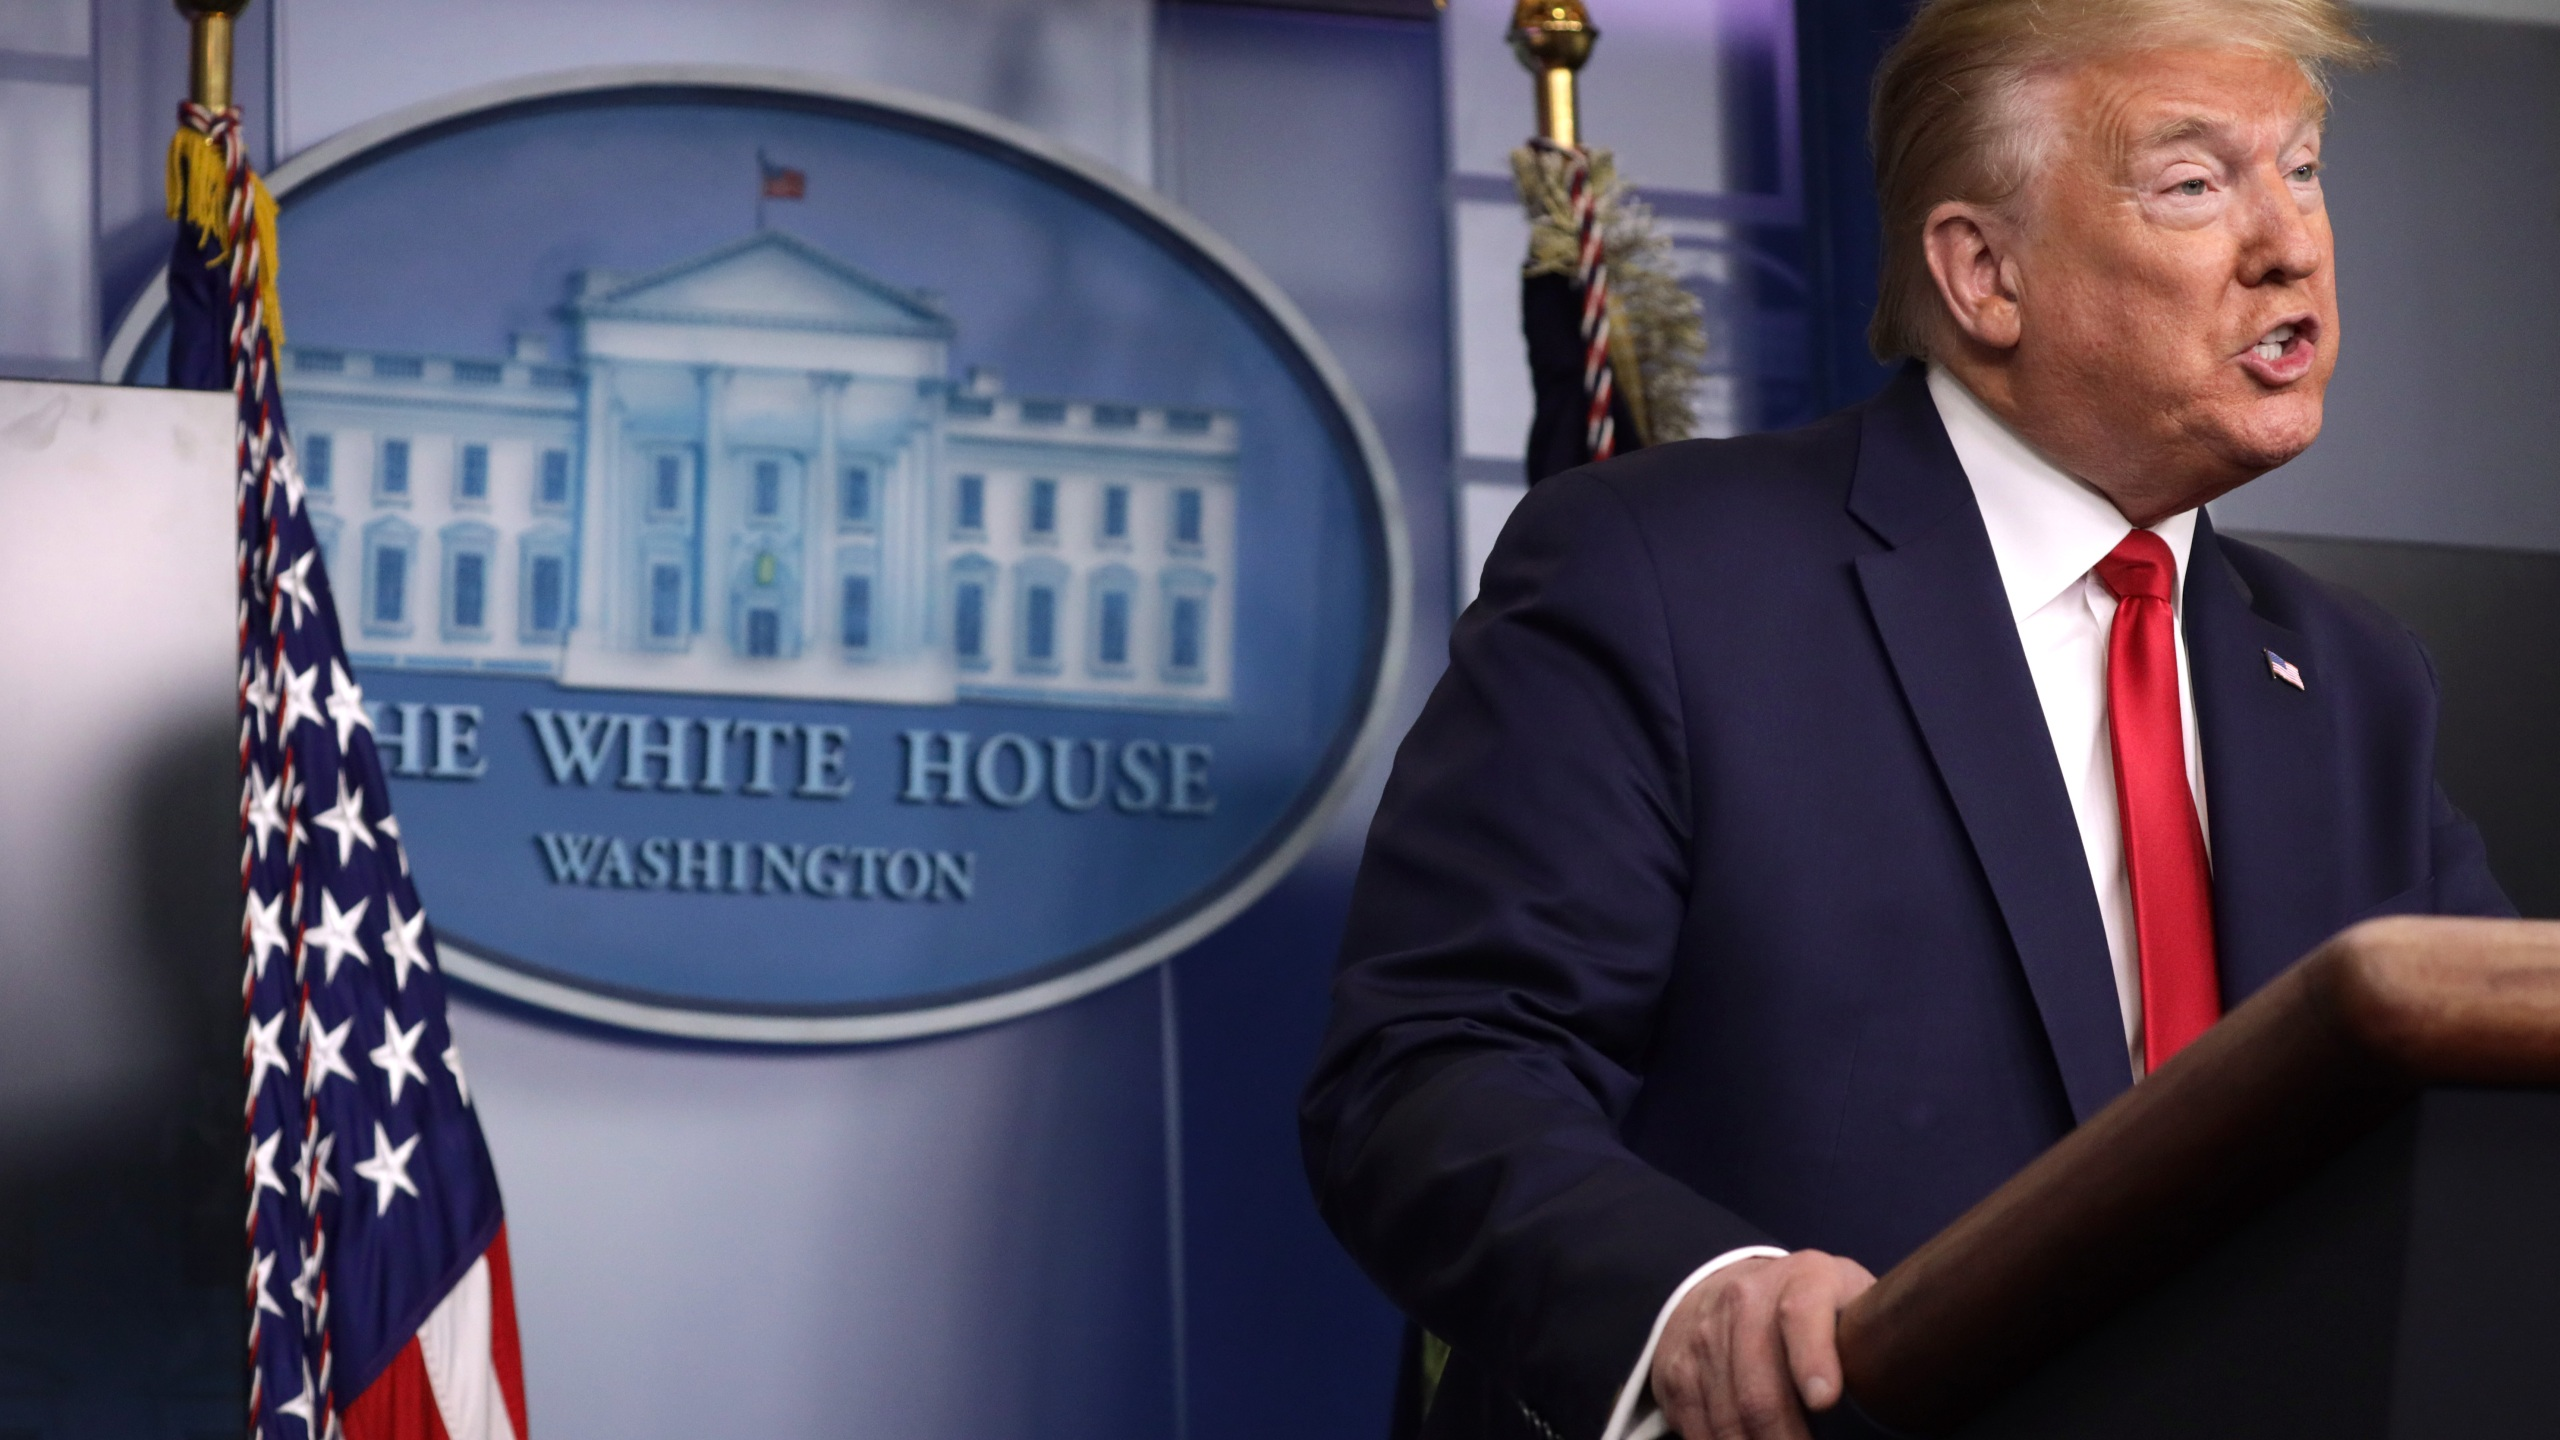 Donald Trump makes a statement in the briefing room at the White House on May 22, 2020 in Washington, D.C. (Alex Wong/Getty Images)